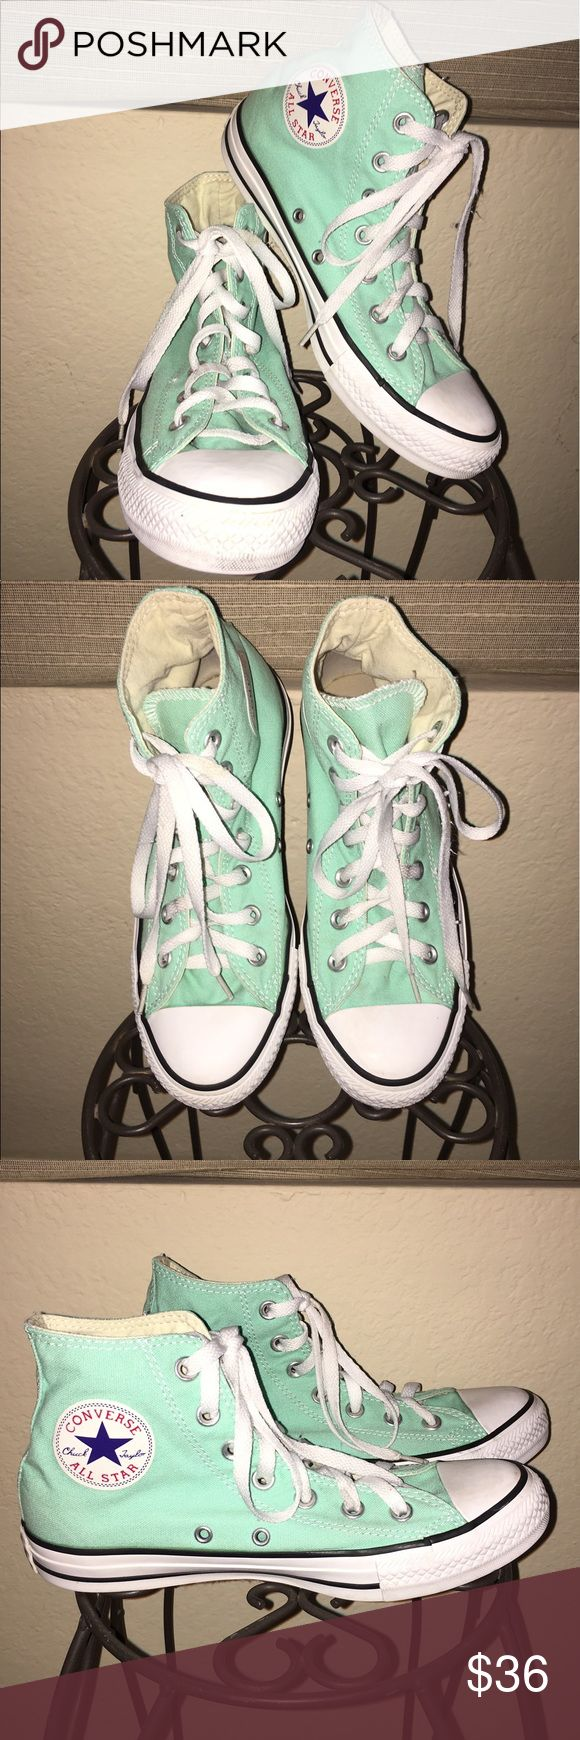 Converse High Tops FLAWLESS Mint Green Converse High Tops  Women's Size 8  Men's Size 6   NO FLAWS Converse Shoes Sneakers